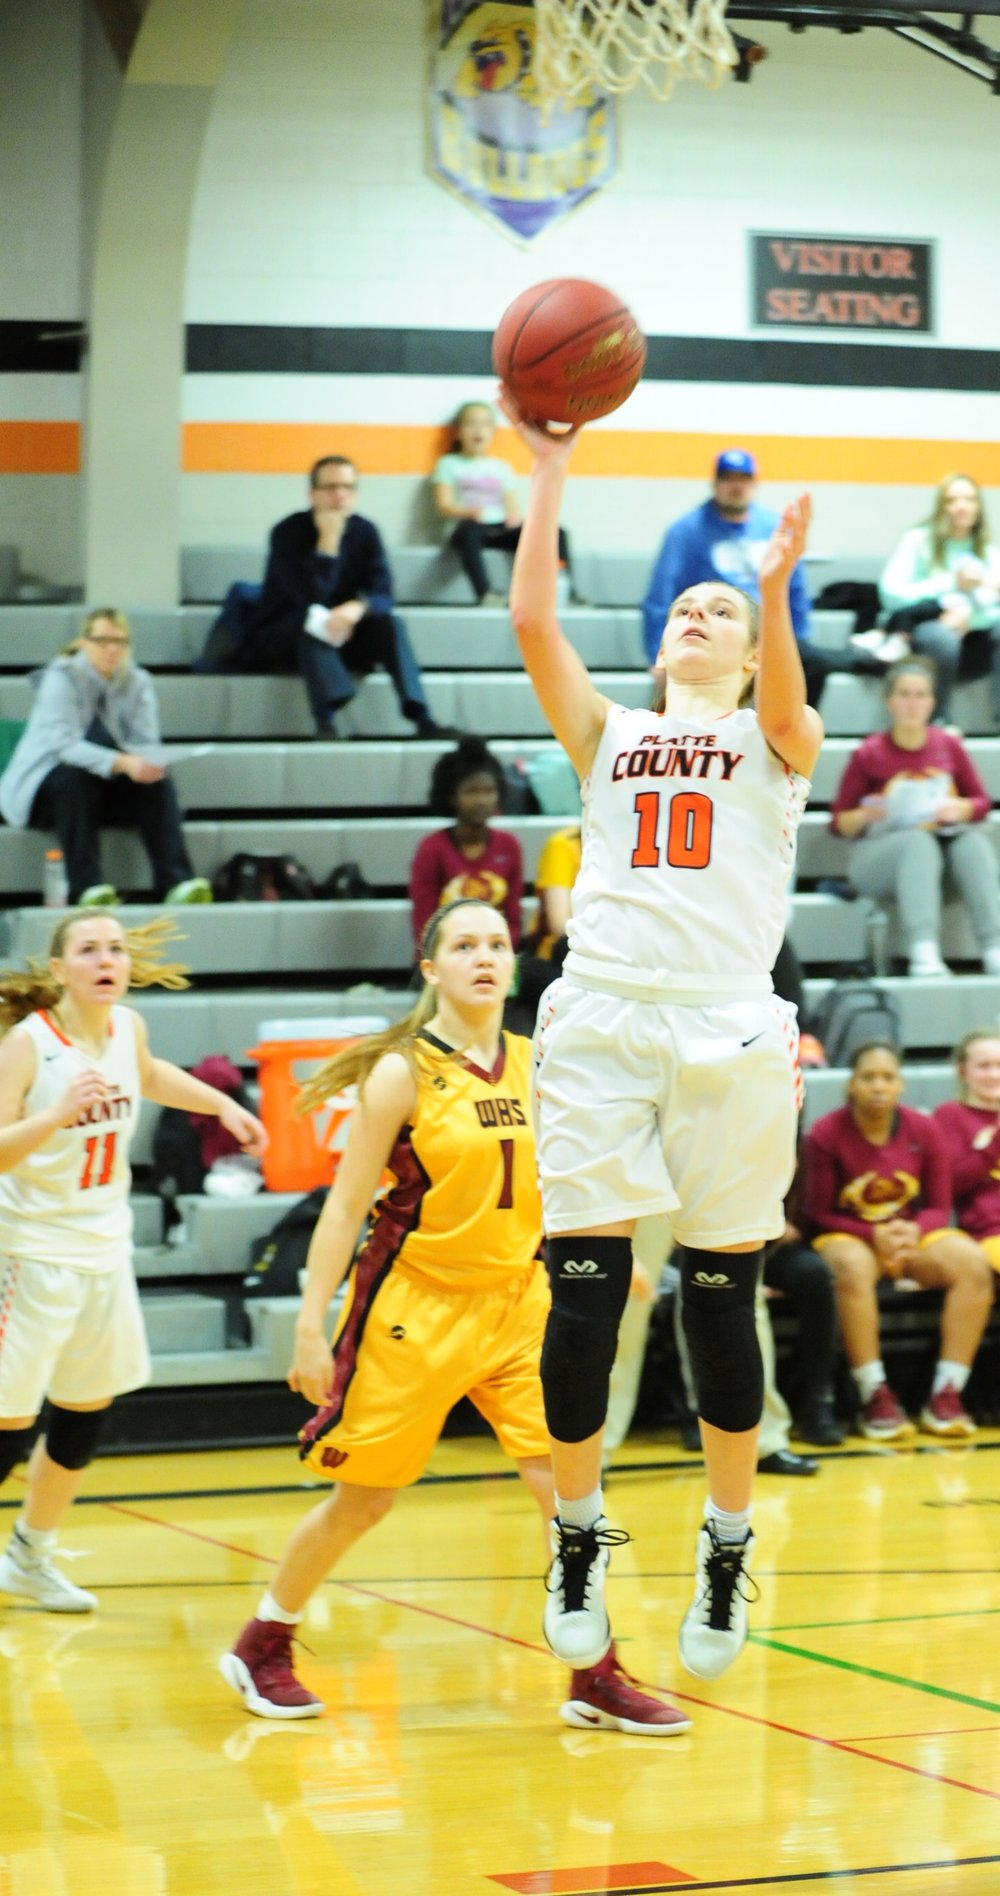 NICK INGRAM/Citizen photo Platte County guard Hannah Valentine (10) goes in for a layup against Winnetonka on Monday, Jan. 30 at Platte County High School.